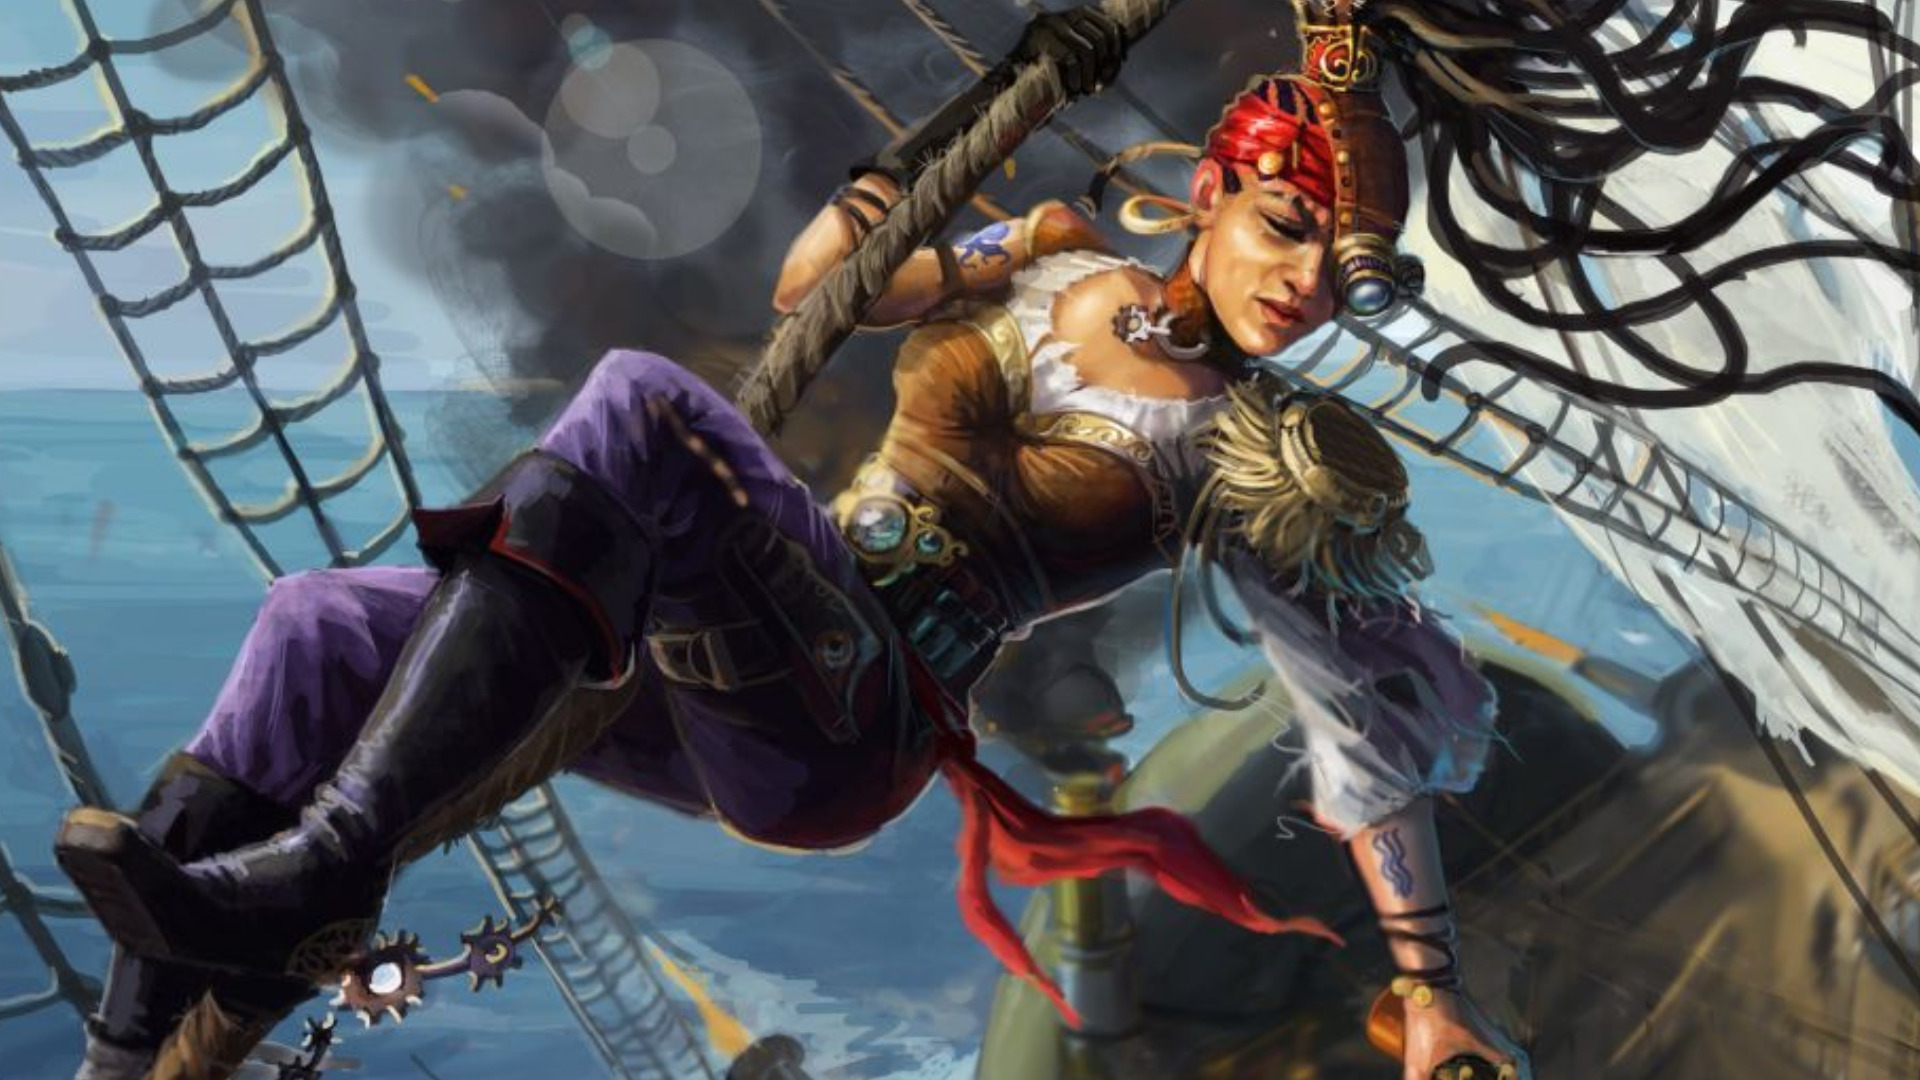 Pirate Hd Wallpaper Background Image 1920x1080 Id